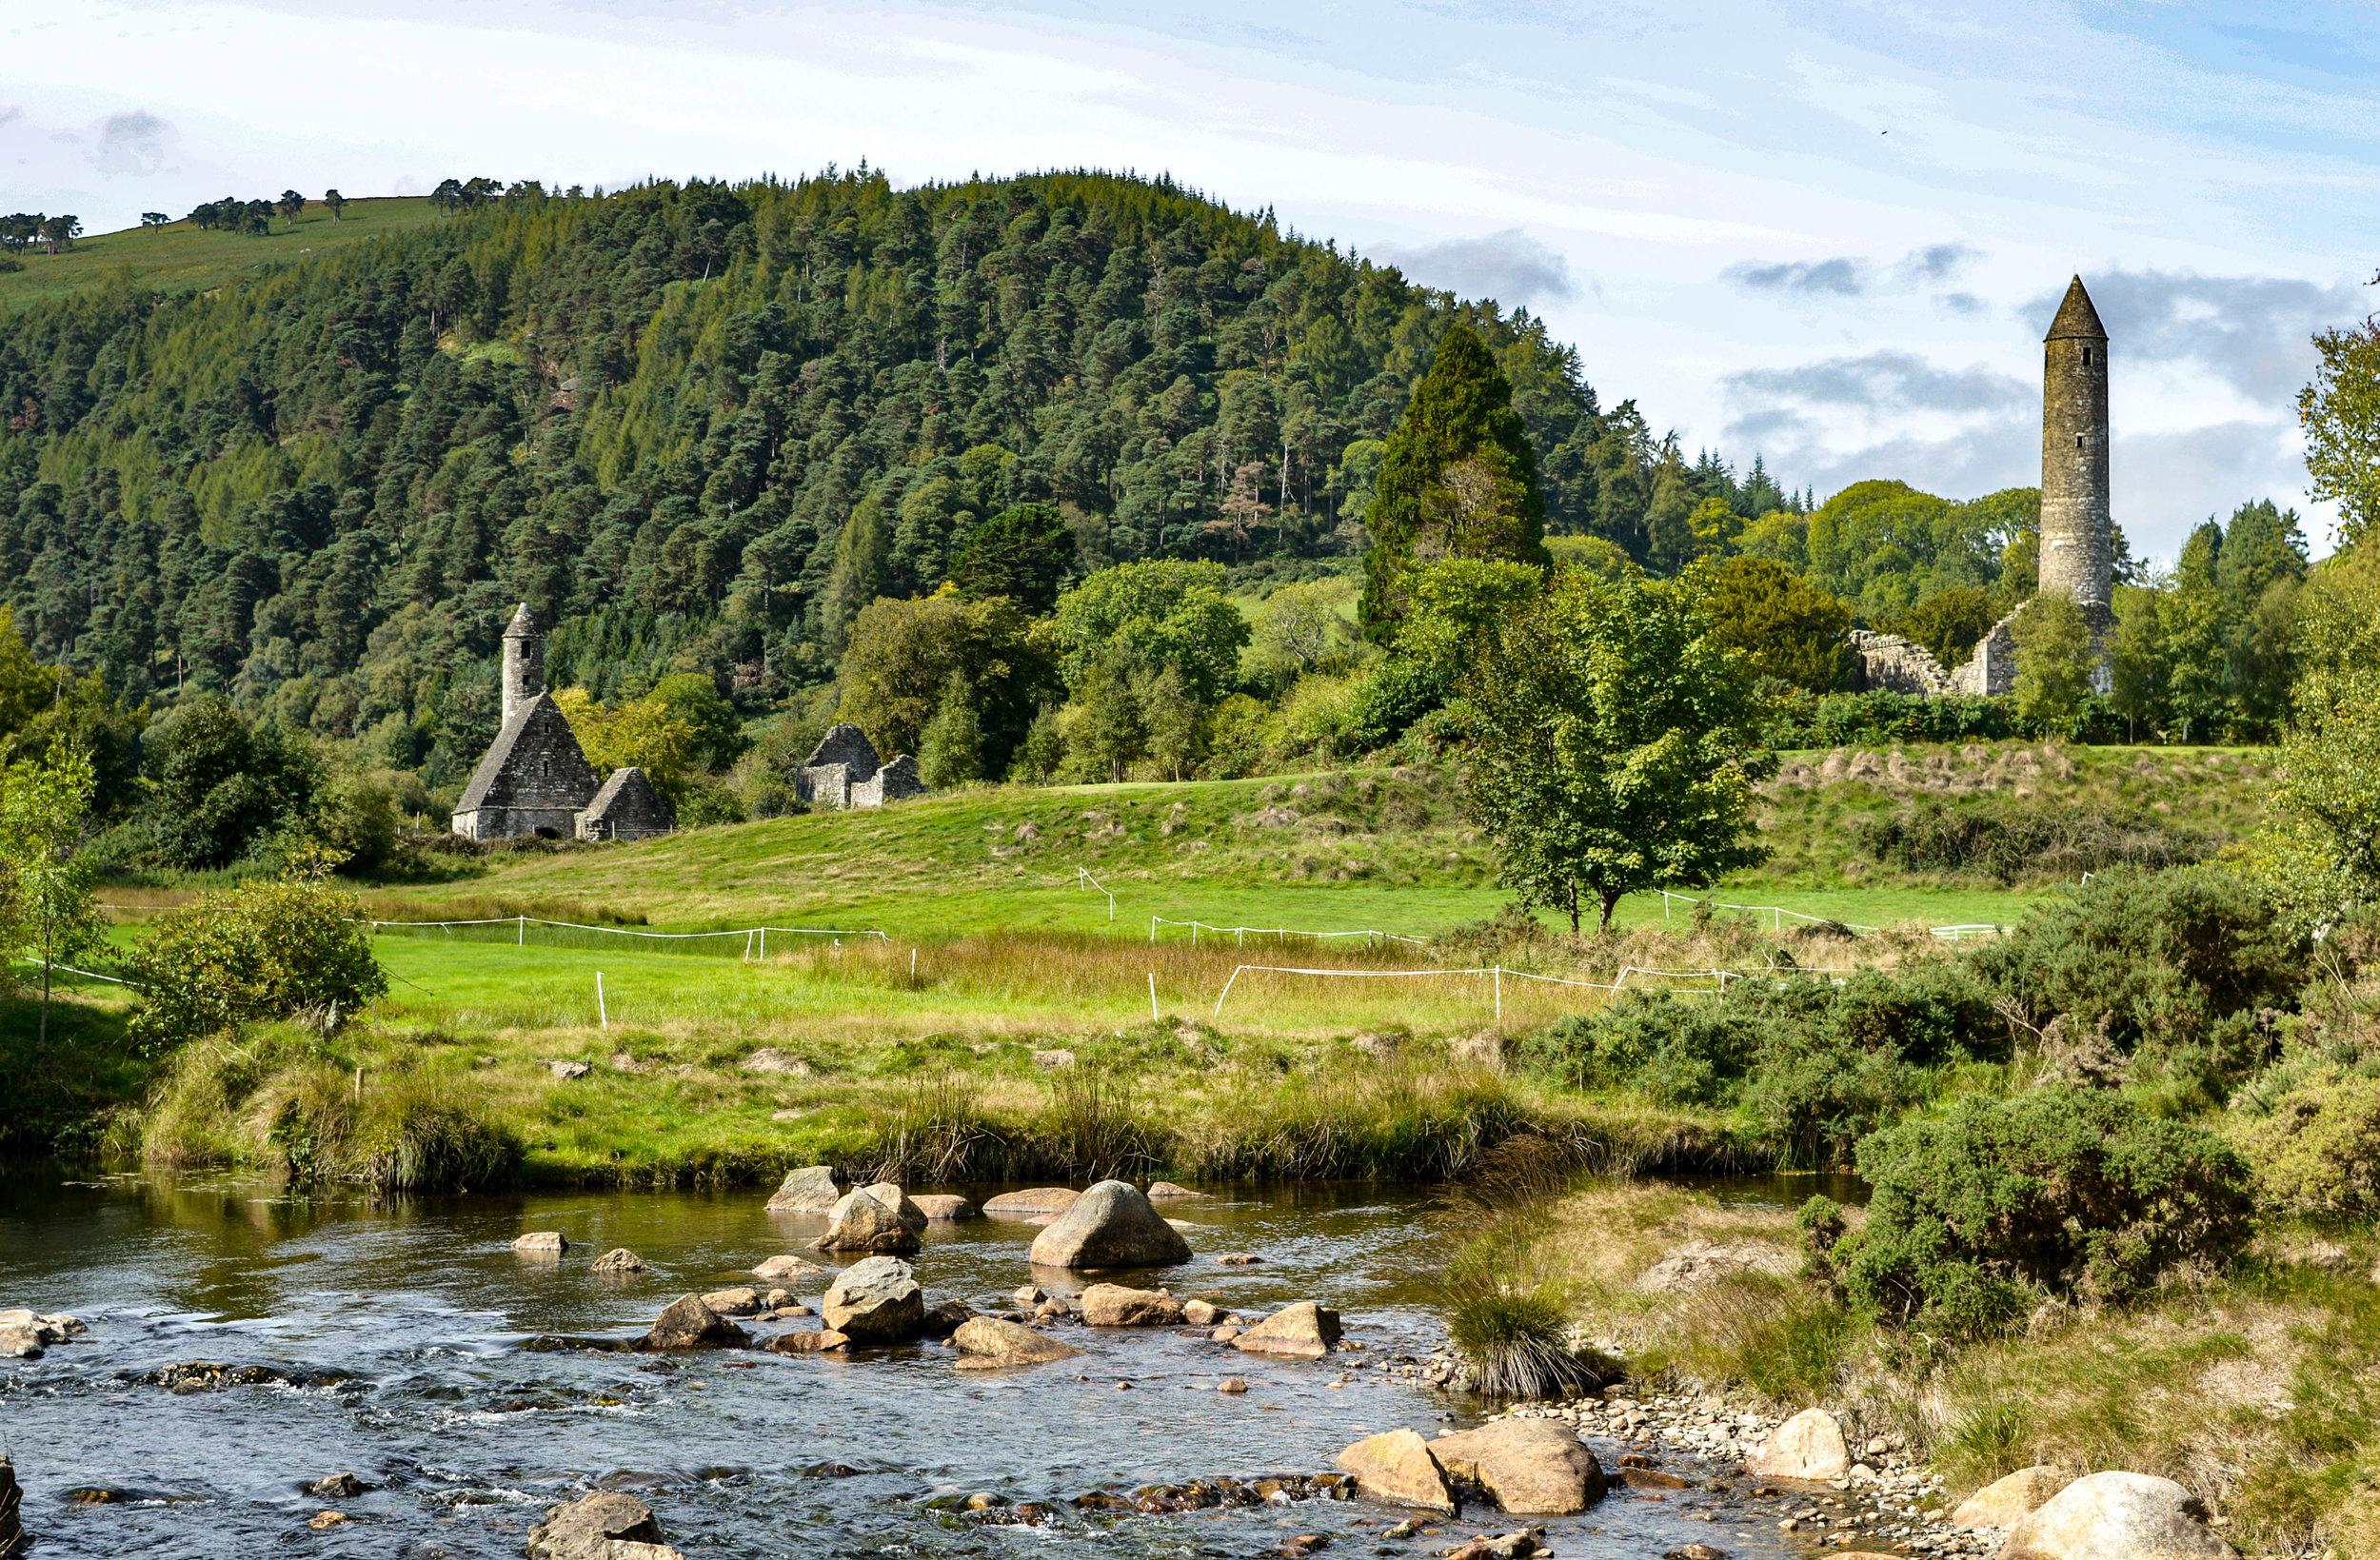 Glendalough & Wicklow mountains - Wander an hour outside Dublin's Georgian architecture, brightly painted brownstone doors, college student filled city streets, and find the other worldly landscapes of Game of Thrones, Princess Bride, and King Arthur.